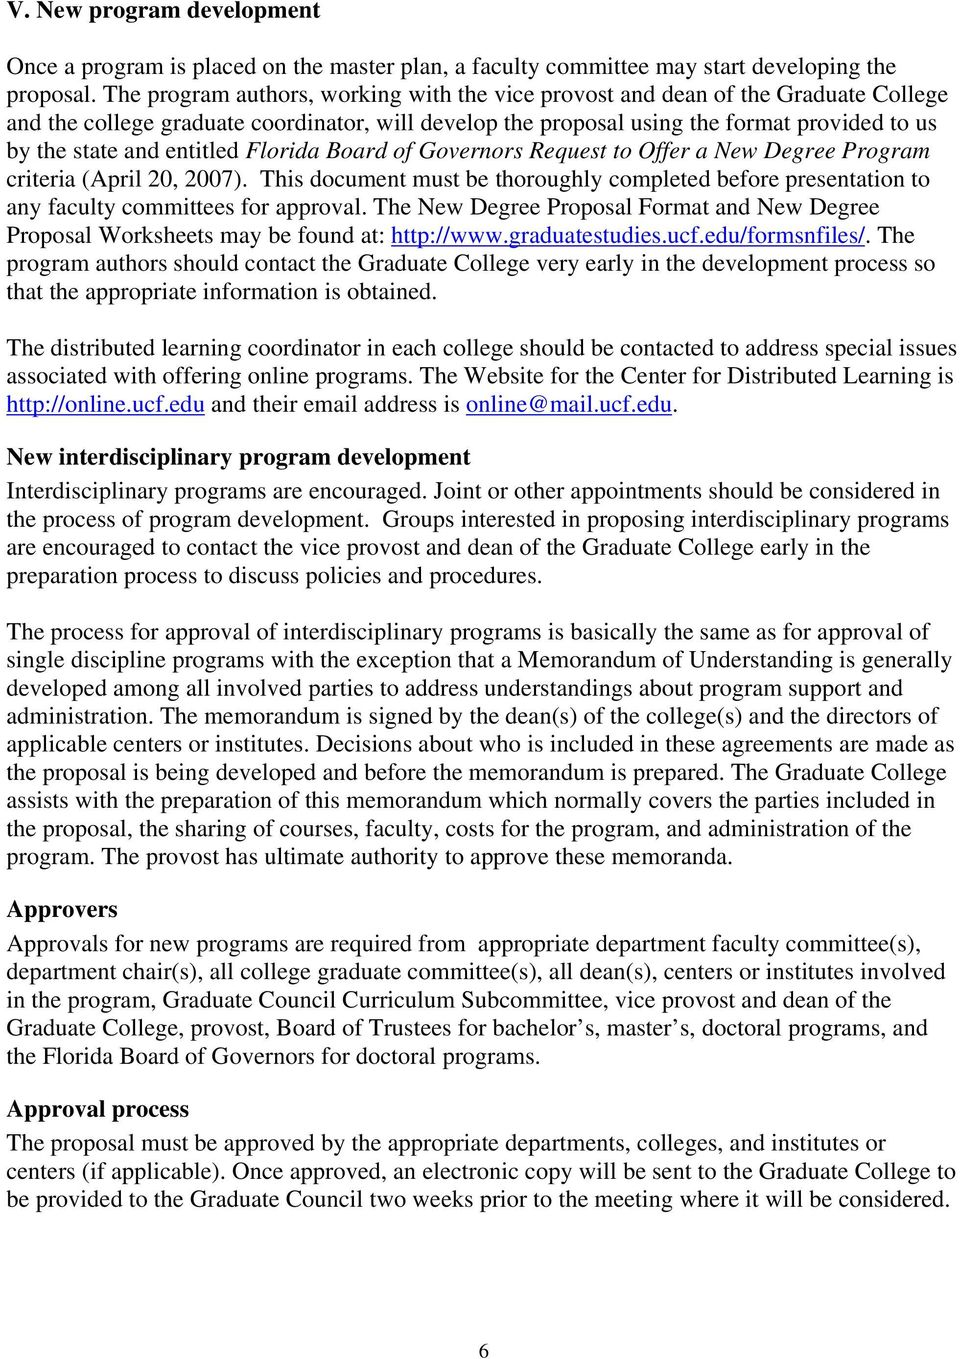 entitled Florida Board of Governors Request to Offer a New Degree Program criteria (April 20, 2007).